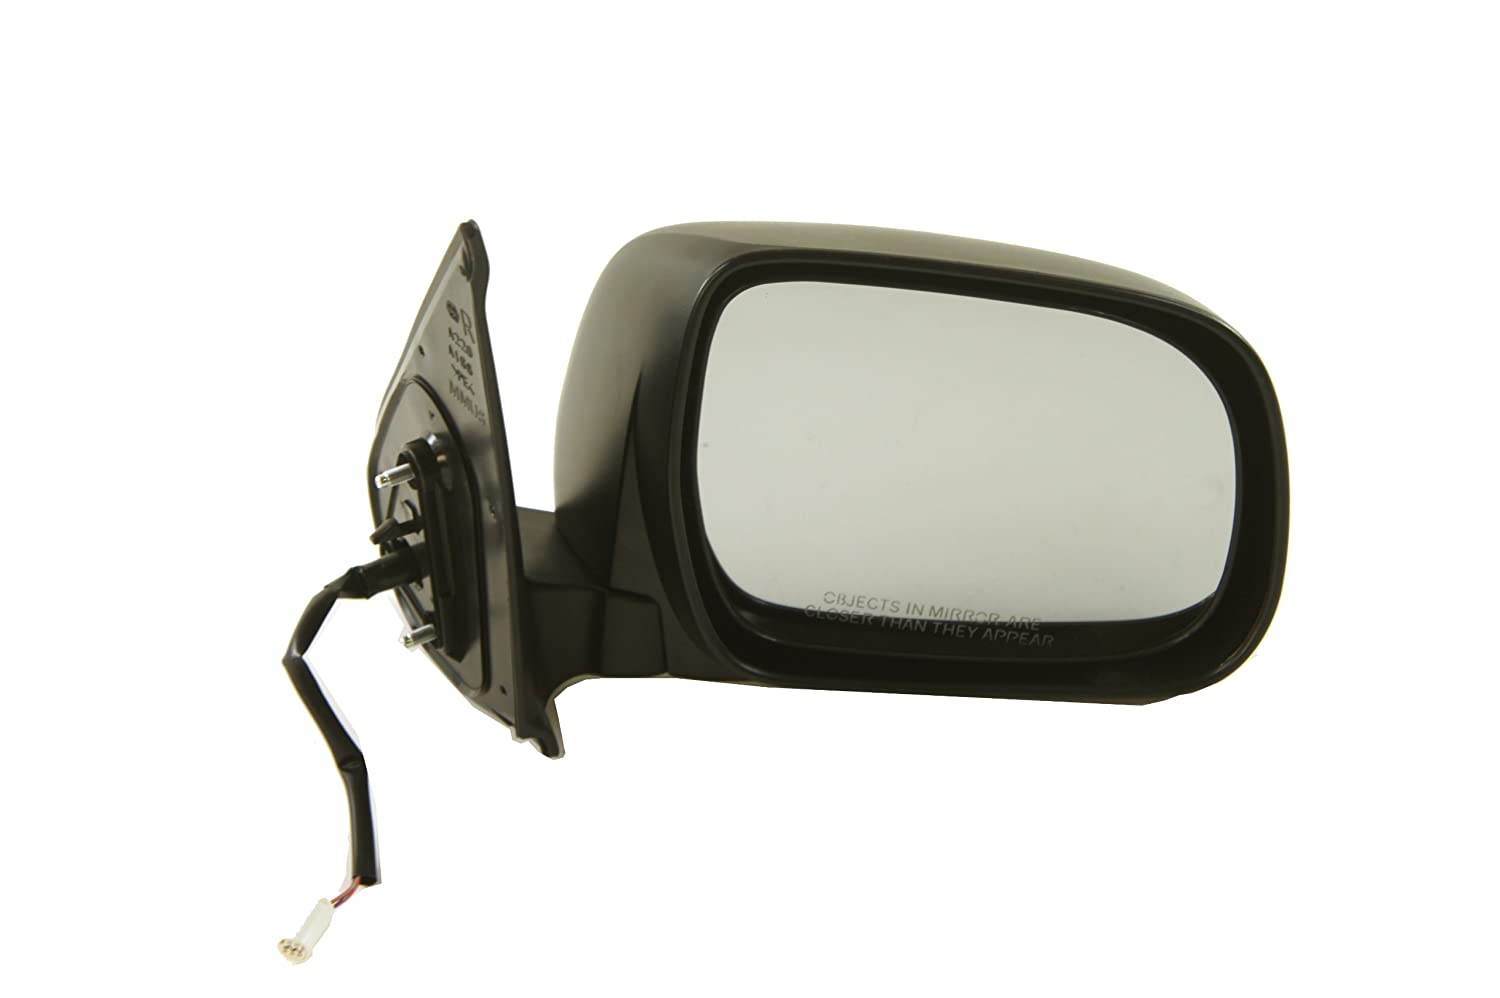 Genuine Toyota Parts 87910-04170 Passenger Side Mirror Outside Rear View